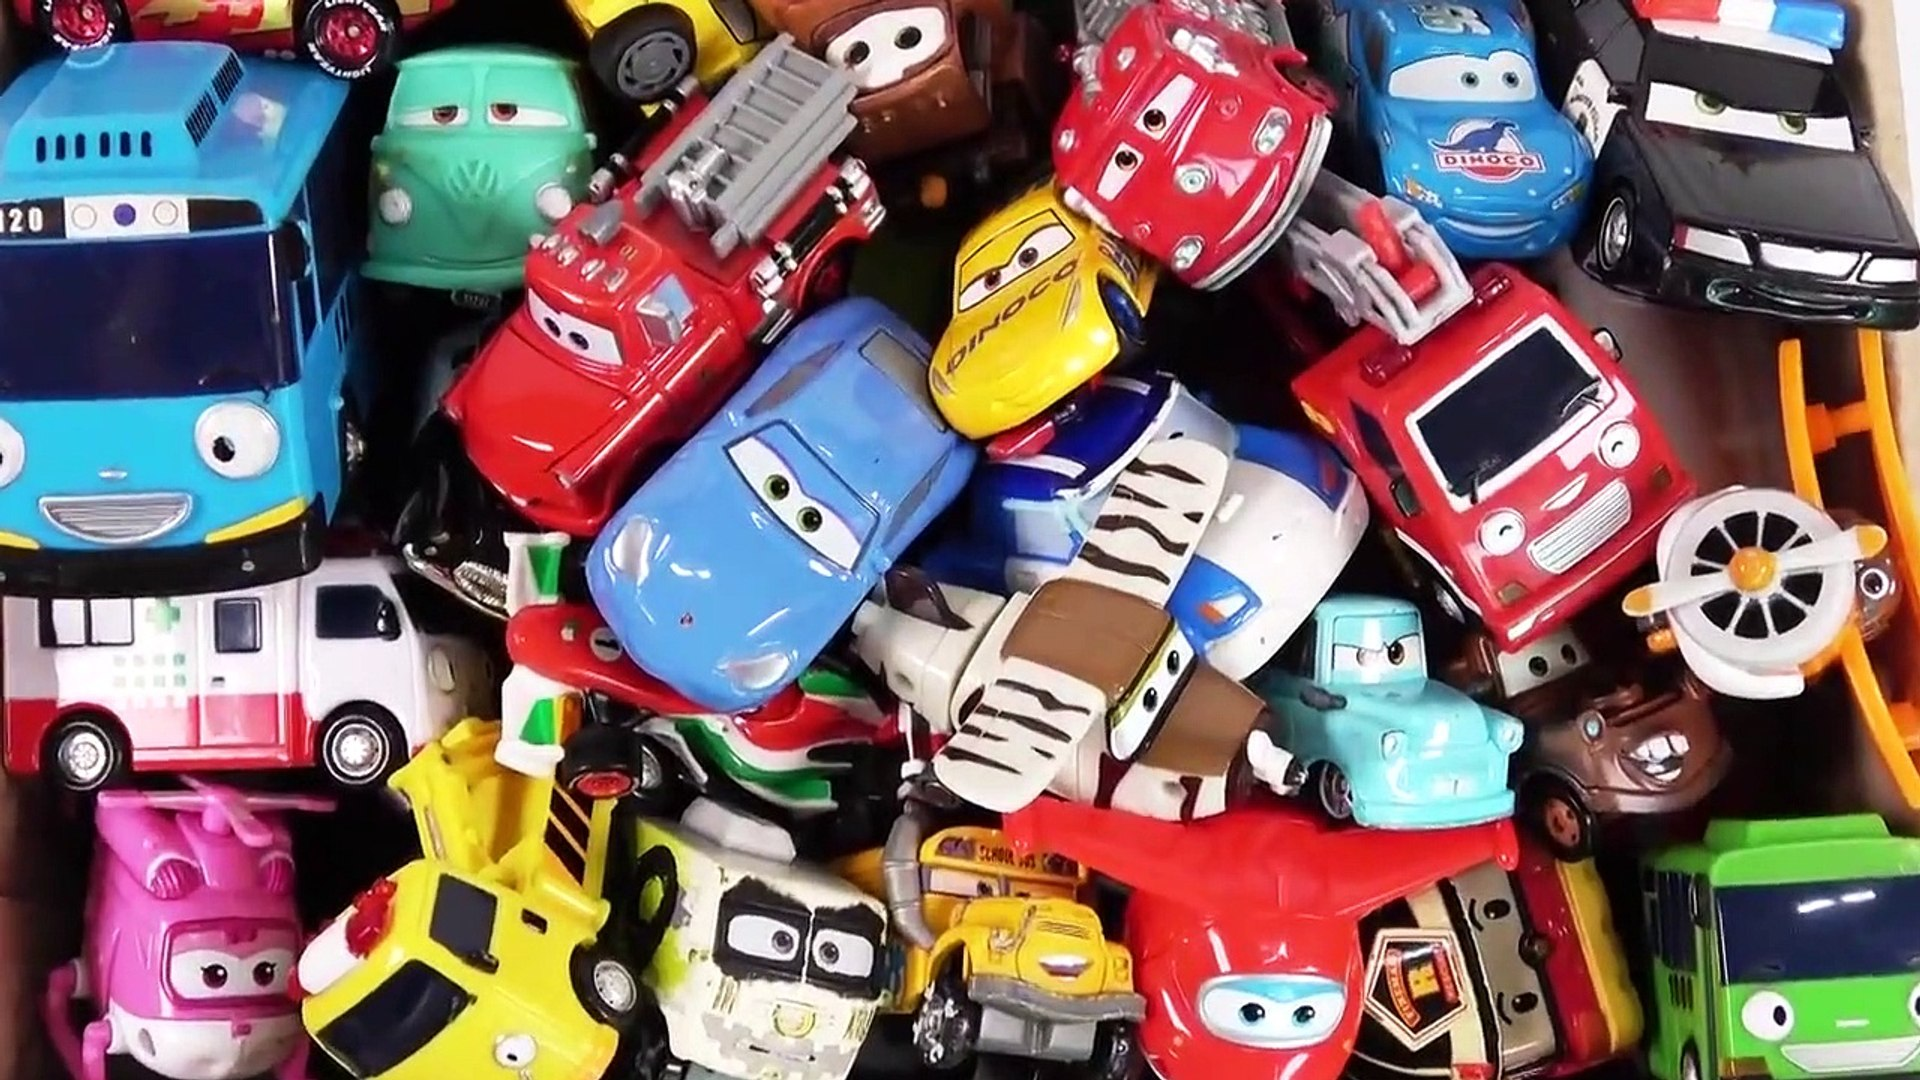 Transportation Vehicles Box Full Of Toys Education Play Cars For Kids